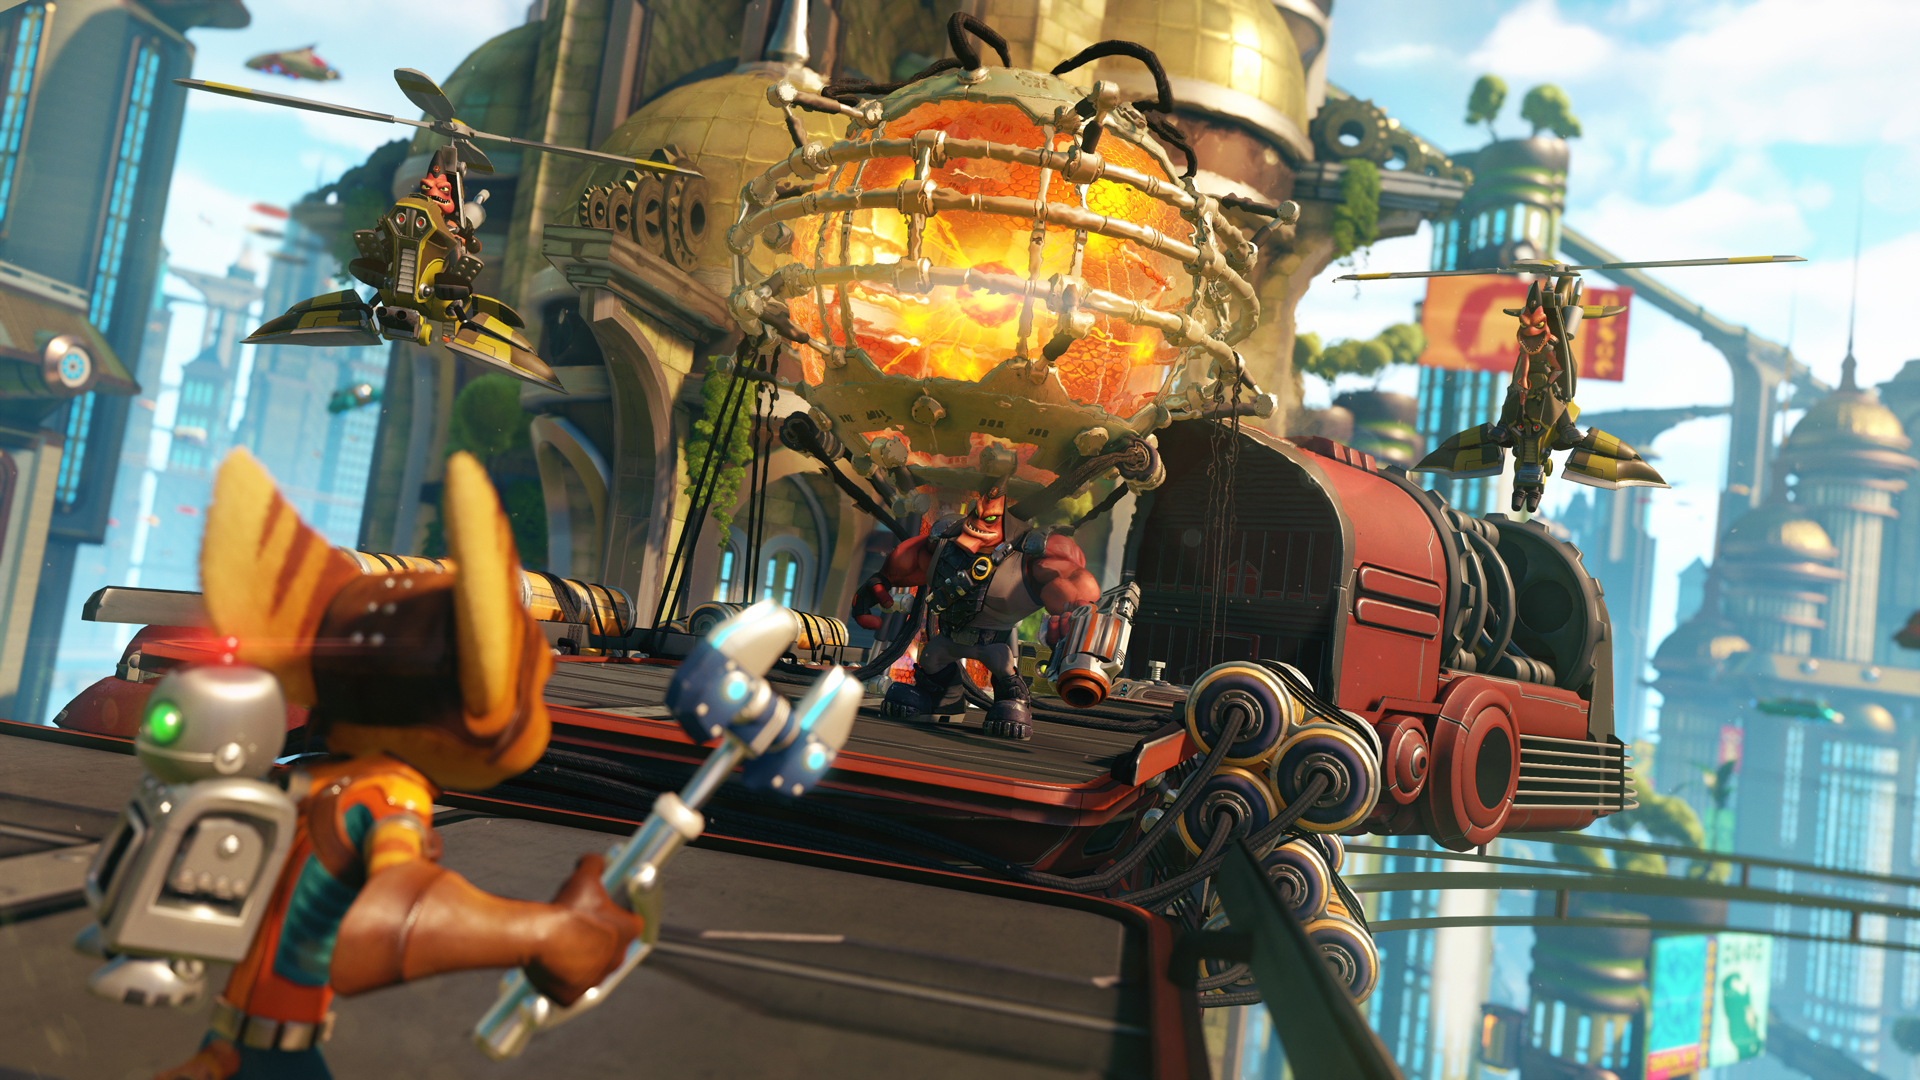 Ratchet And Clank Ps4 Preview More Than Meets The Eye The